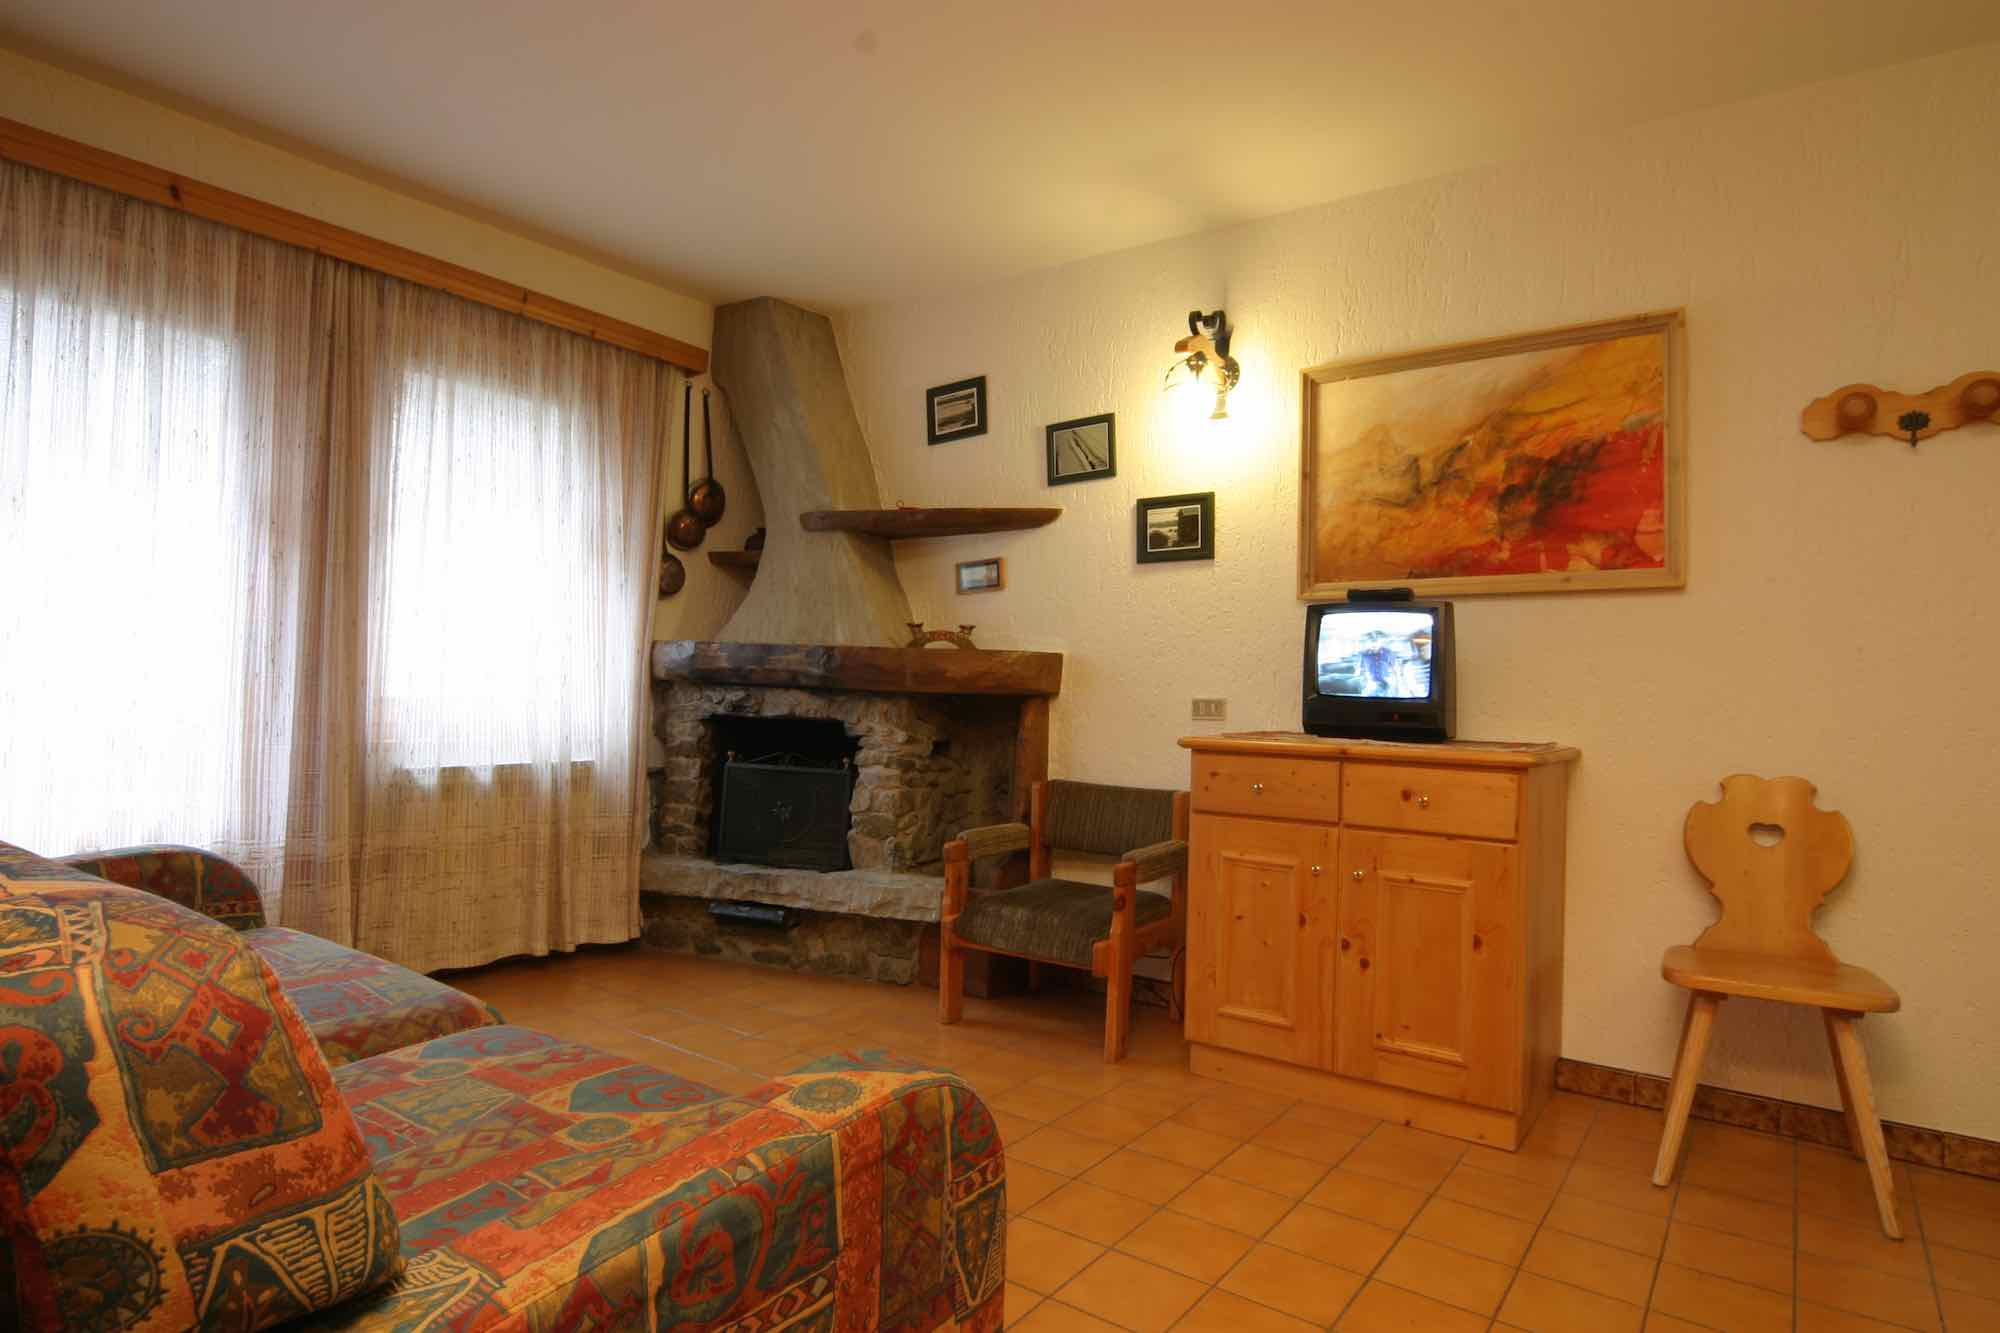 Bait da Borch - Via Saroch N.1430/f, Livigno 23041 - Apartment - Appartamento Federia 2